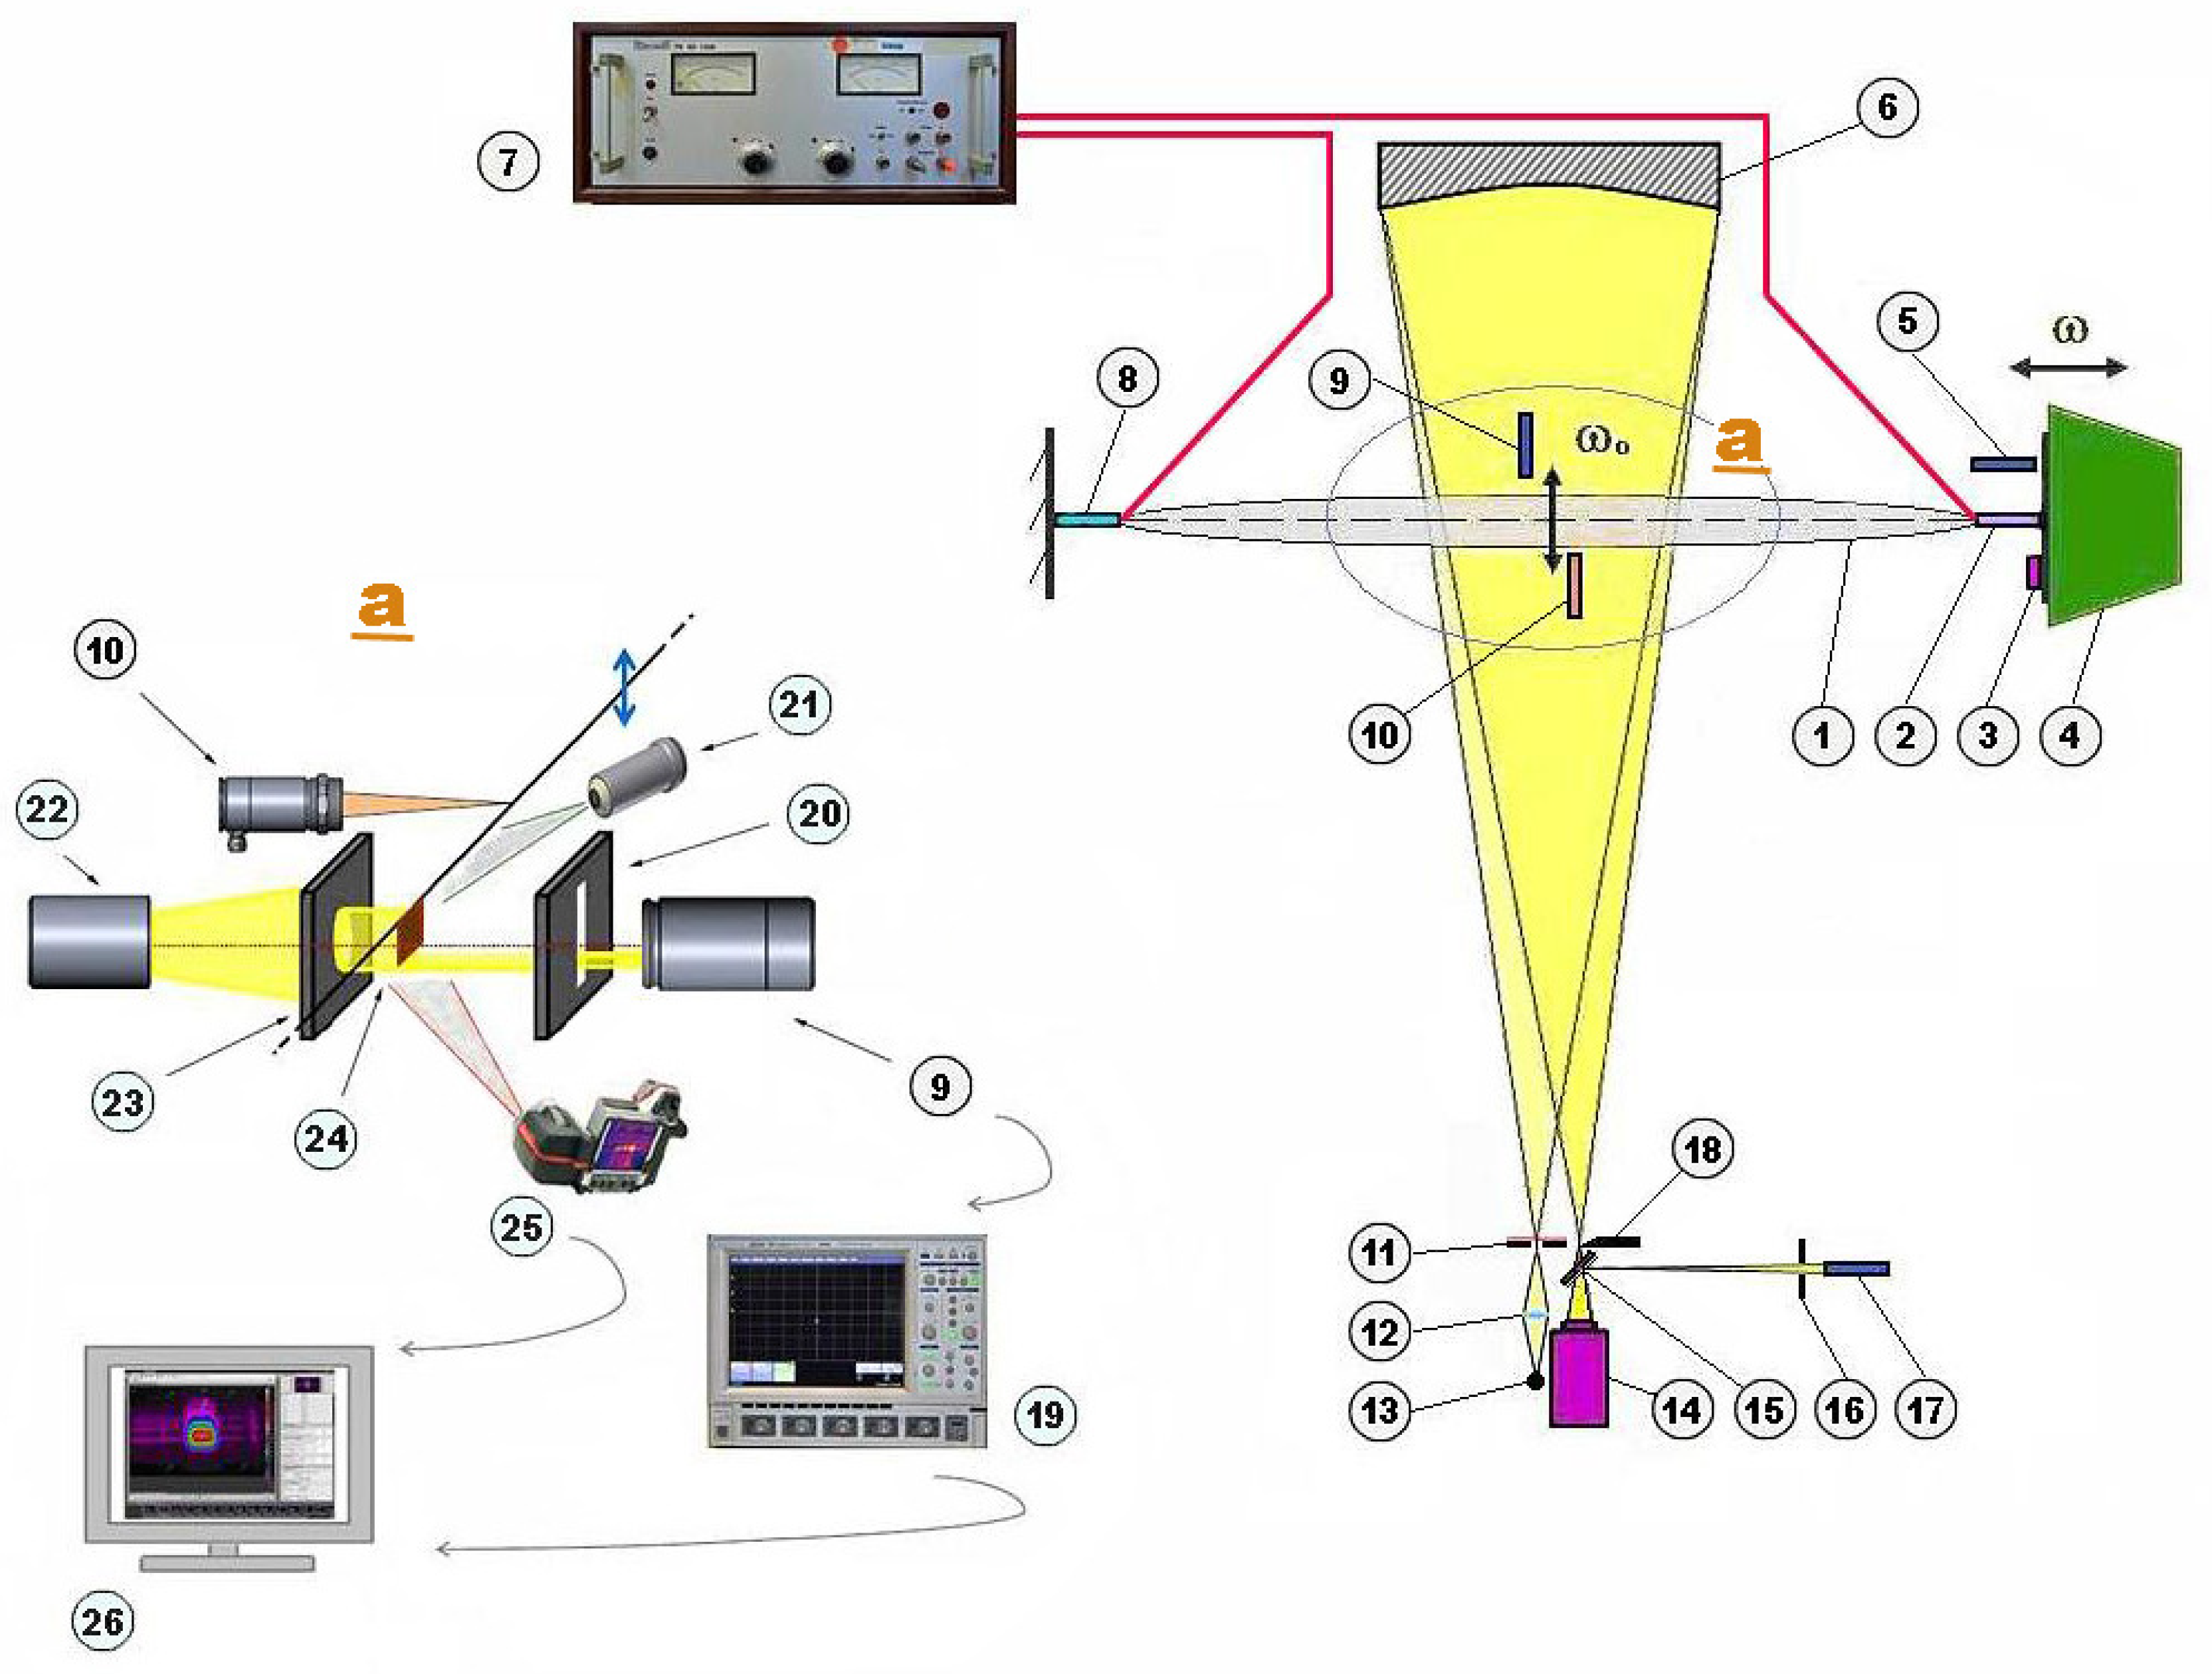 Fluids | Free Full-Text | Experimental Set-Up for the Investigation on wiring diagrams for solar, wiring diagrams for heating and cooling, wiring diagrams for humidifiers, wiring diagrams for boilers, wiring diagrams for air conditioners, wiring diagrams for heat pumps, wiring diagrams for microwave, wiring diagrams for heater, wiring diagrams for generator, wiring diagrams for freezer, wiring diagrams for dishwasher, wiring diagrams for thermostats, wiring diagrams for hvac,